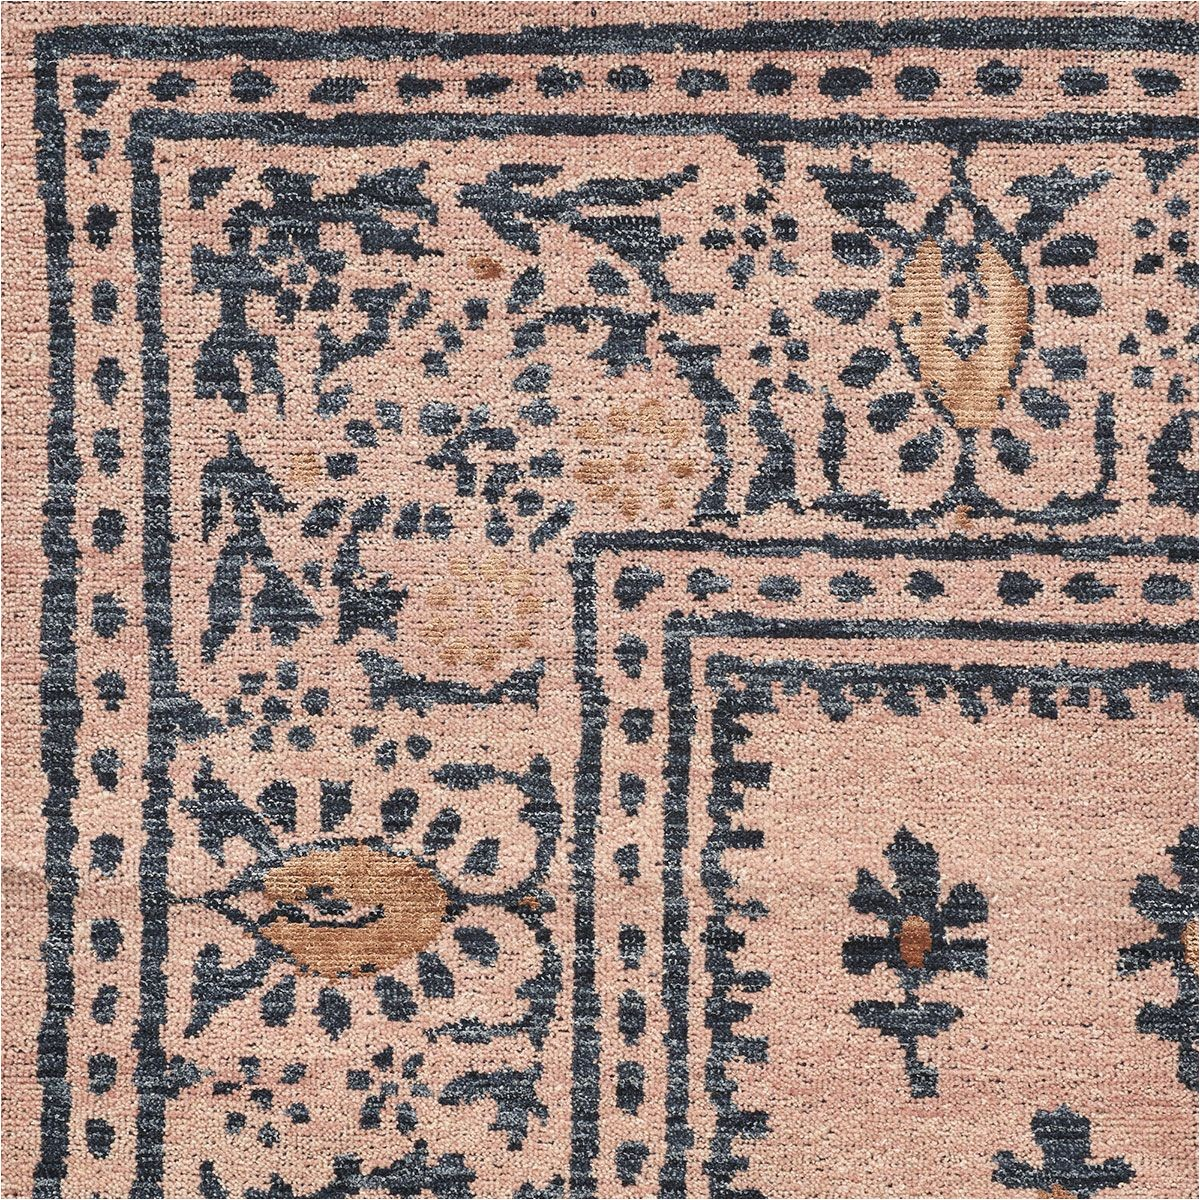 isidore luxyury hand knotted rug pattersom flynn martin custom rugs